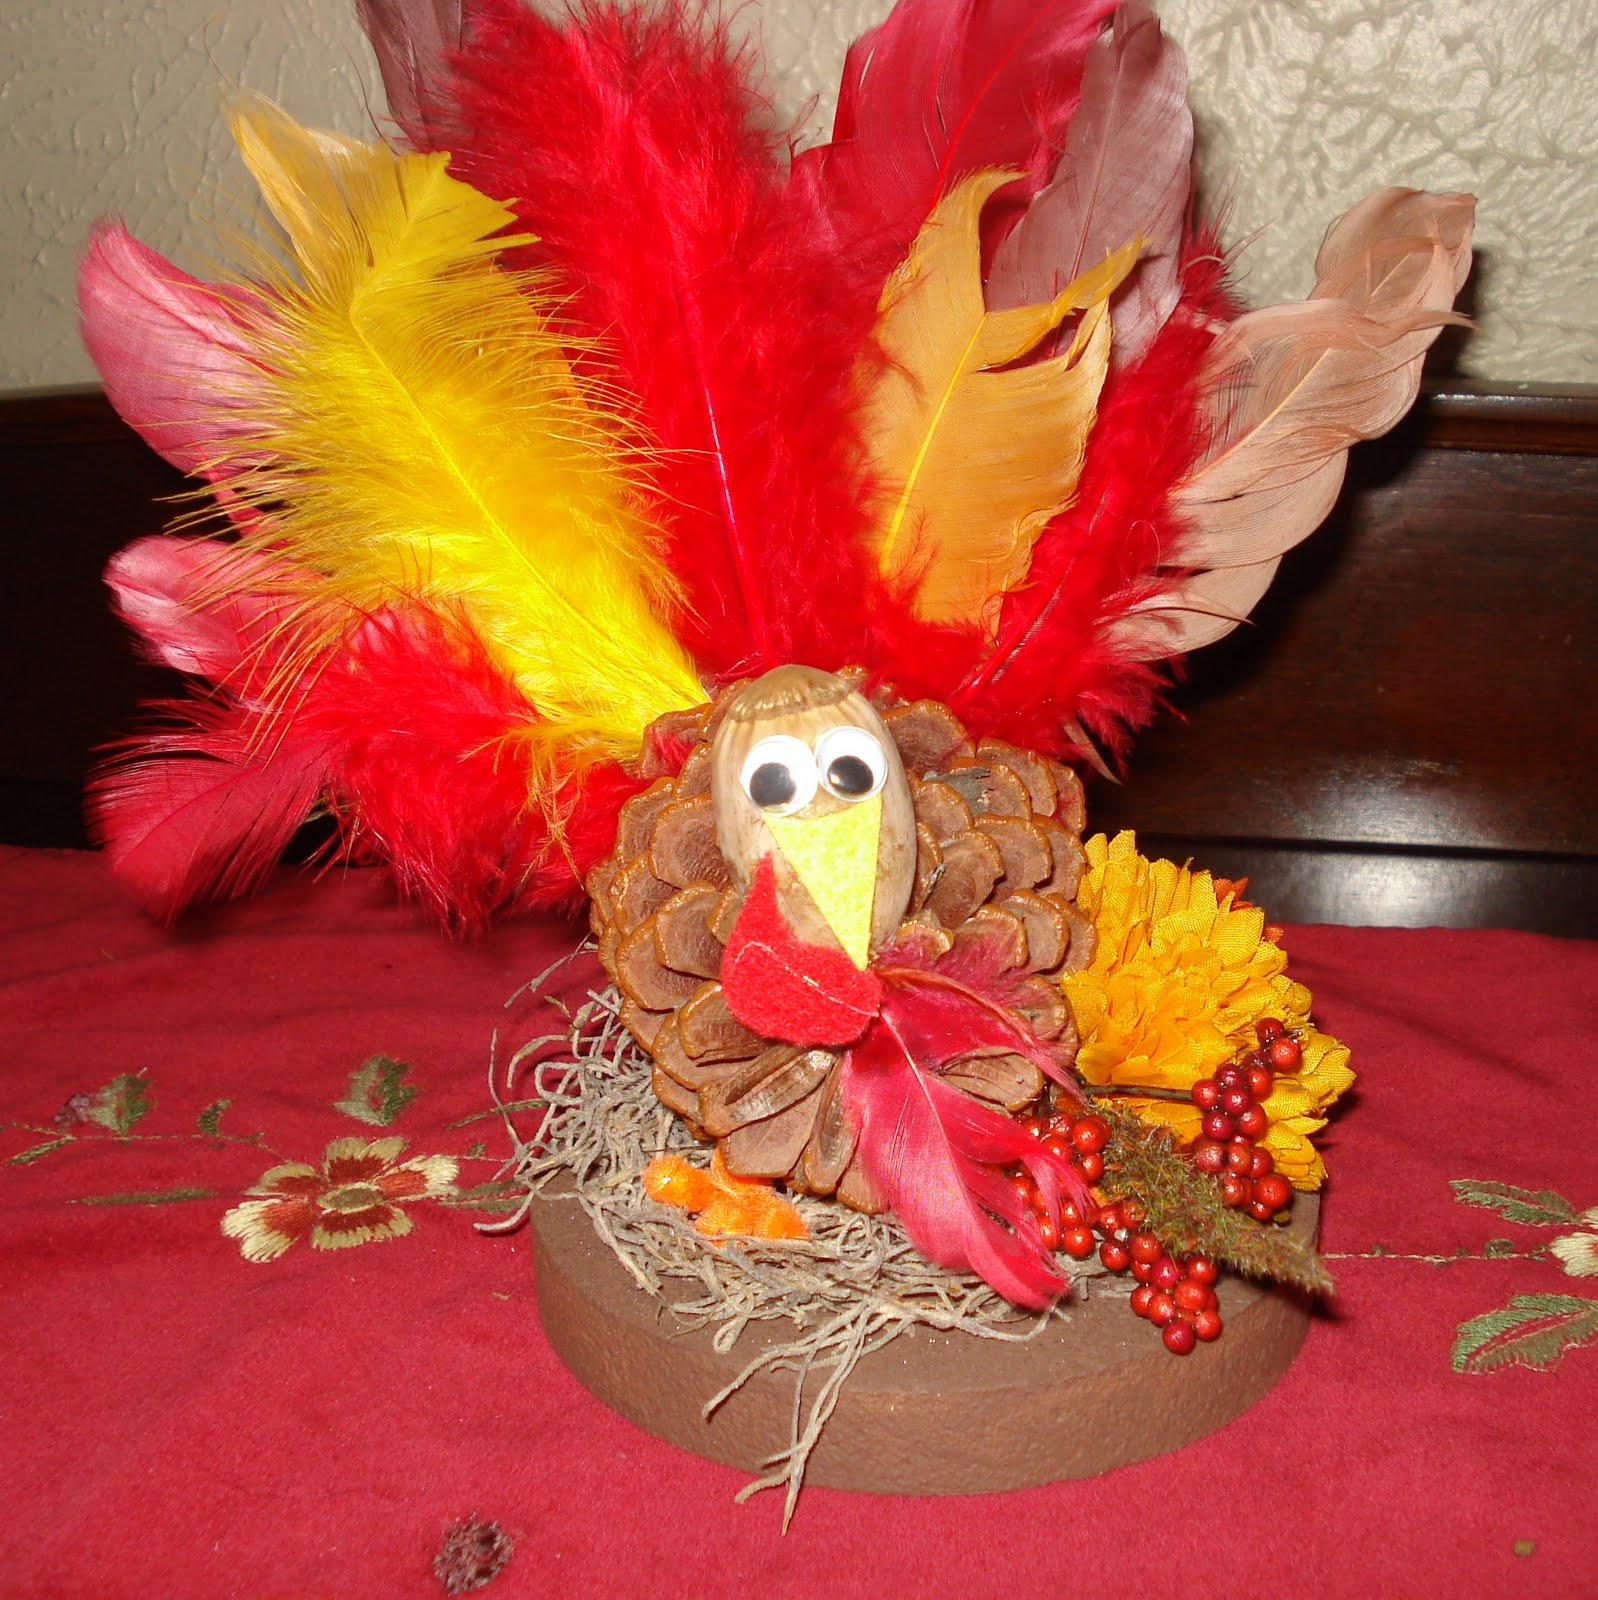 Elder life engagement pinecone turkey centerpiece